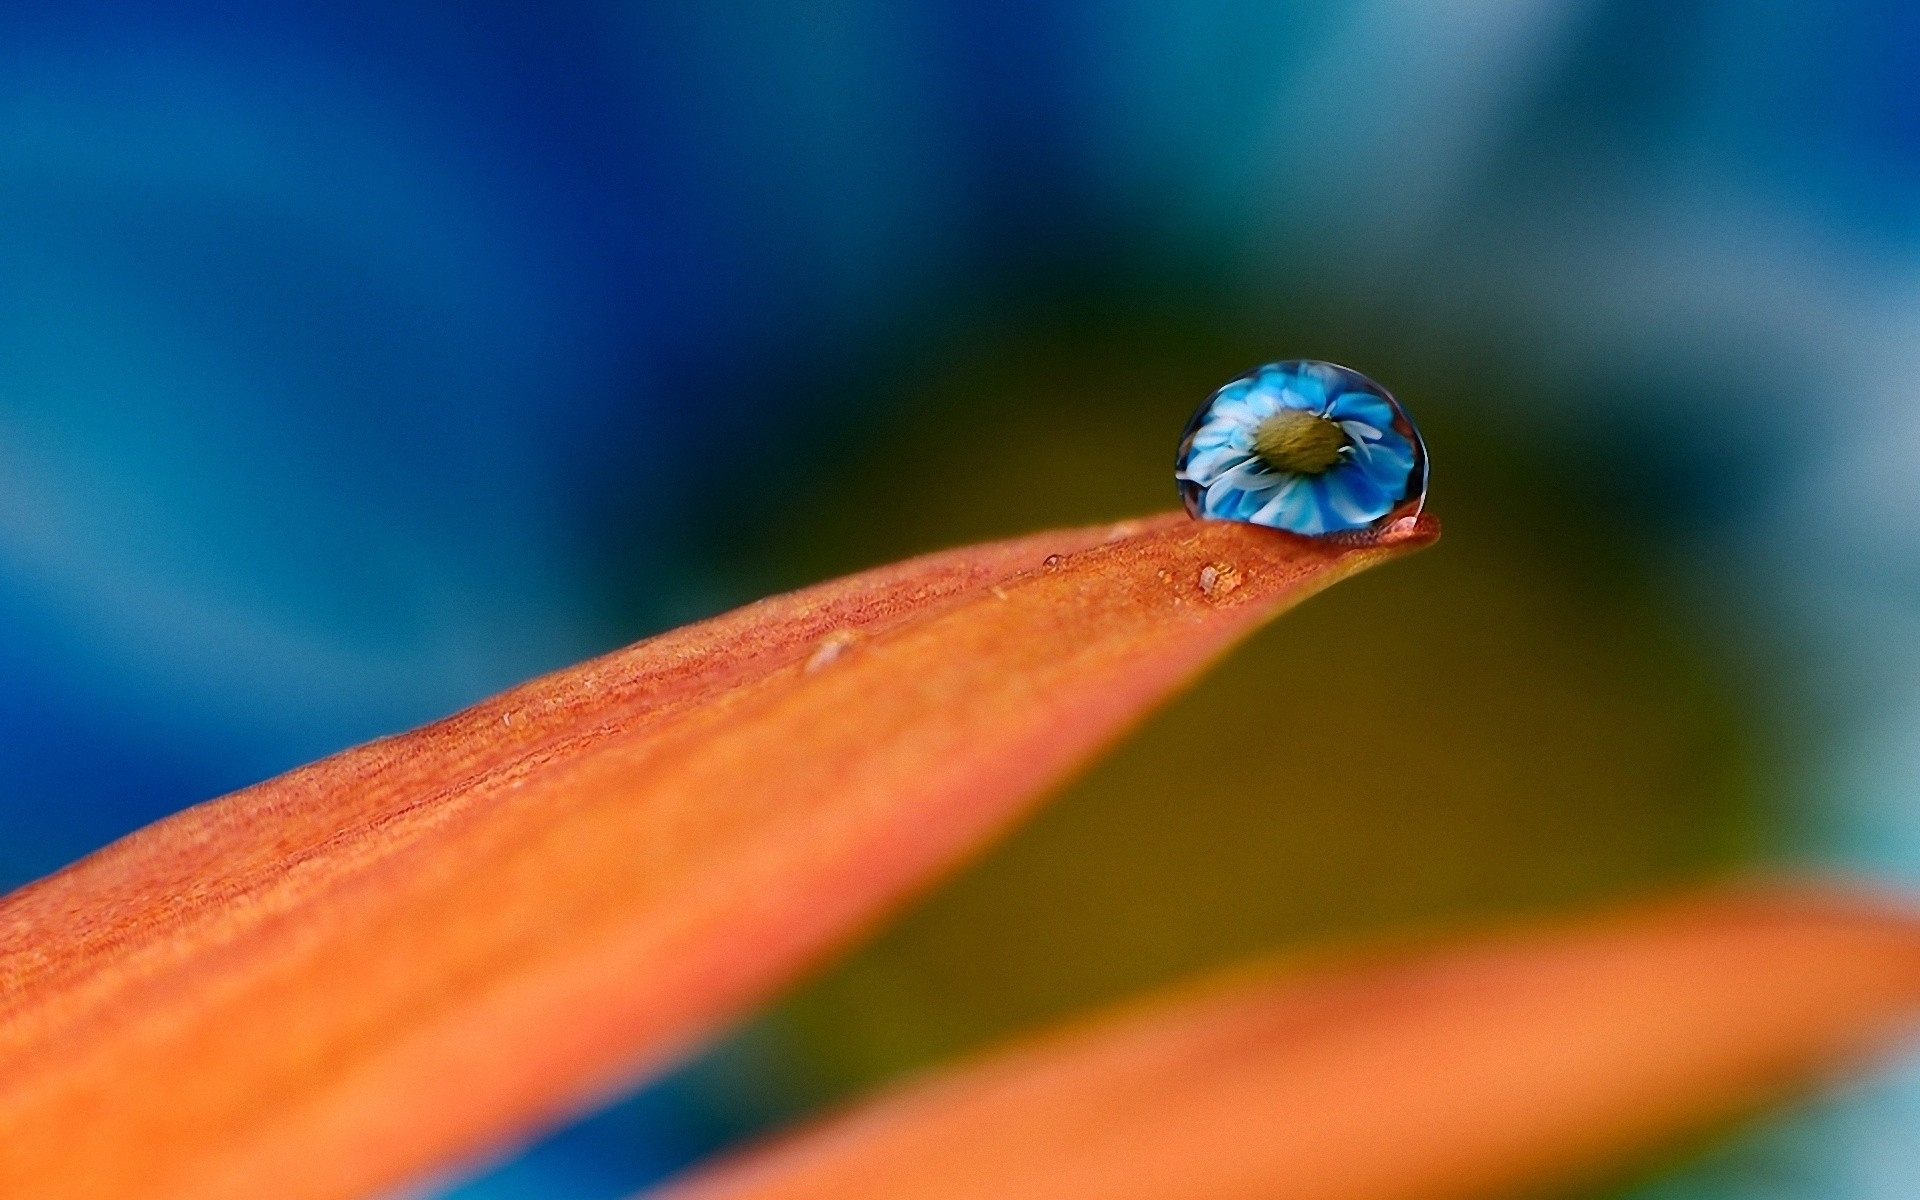 22495 download wallpaper Plants, Flowers, Drops screensavers and pictures for free